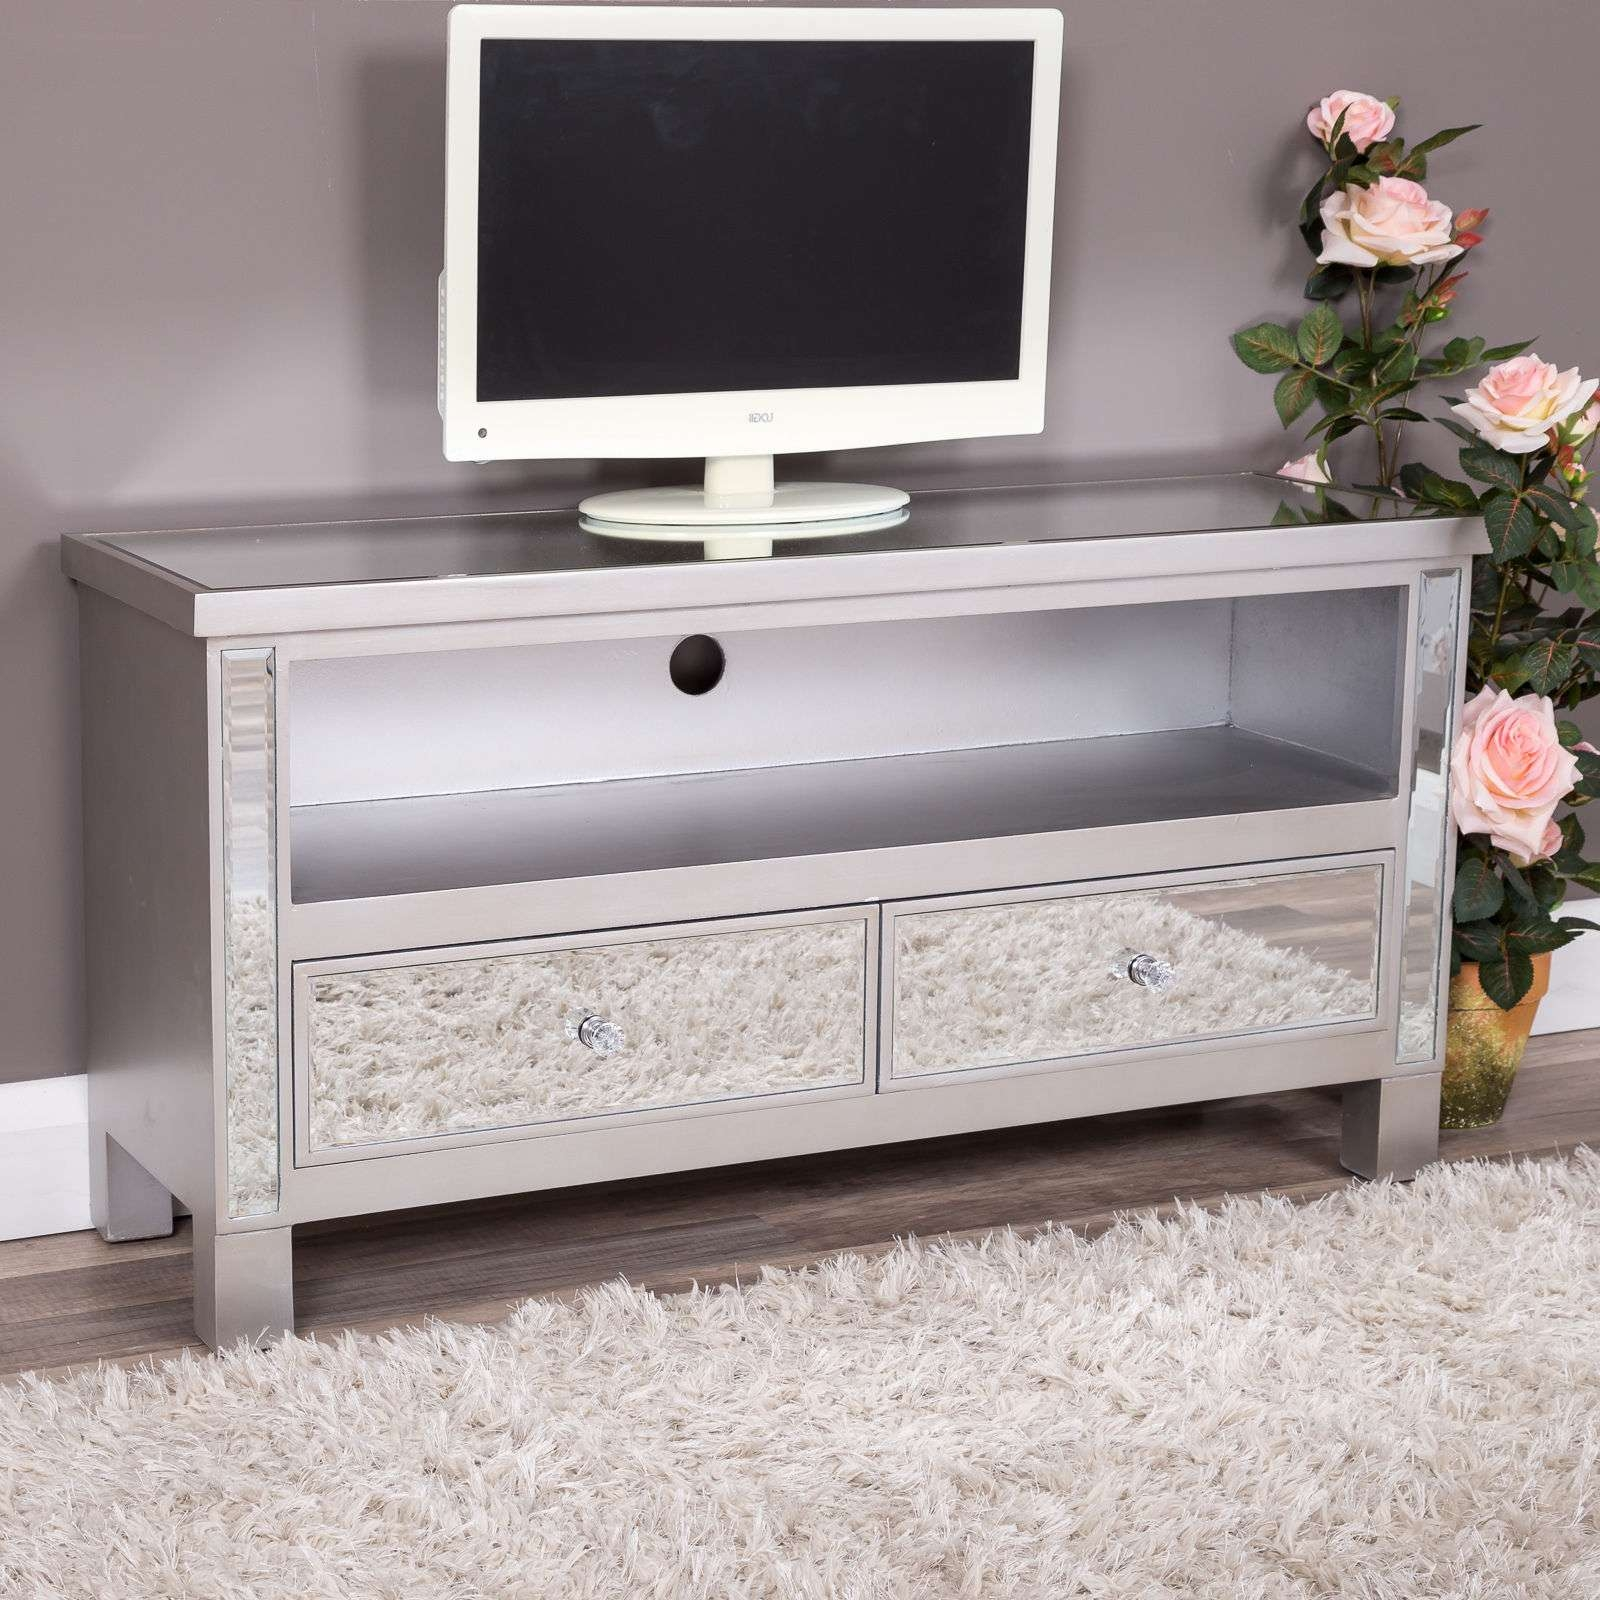 Silver Mirrored Glass 2 Drawer Tv Entertainment Cabinet Stand Unit Inside Mirrored Tv Cabinets Furniture (View 5 of 20)